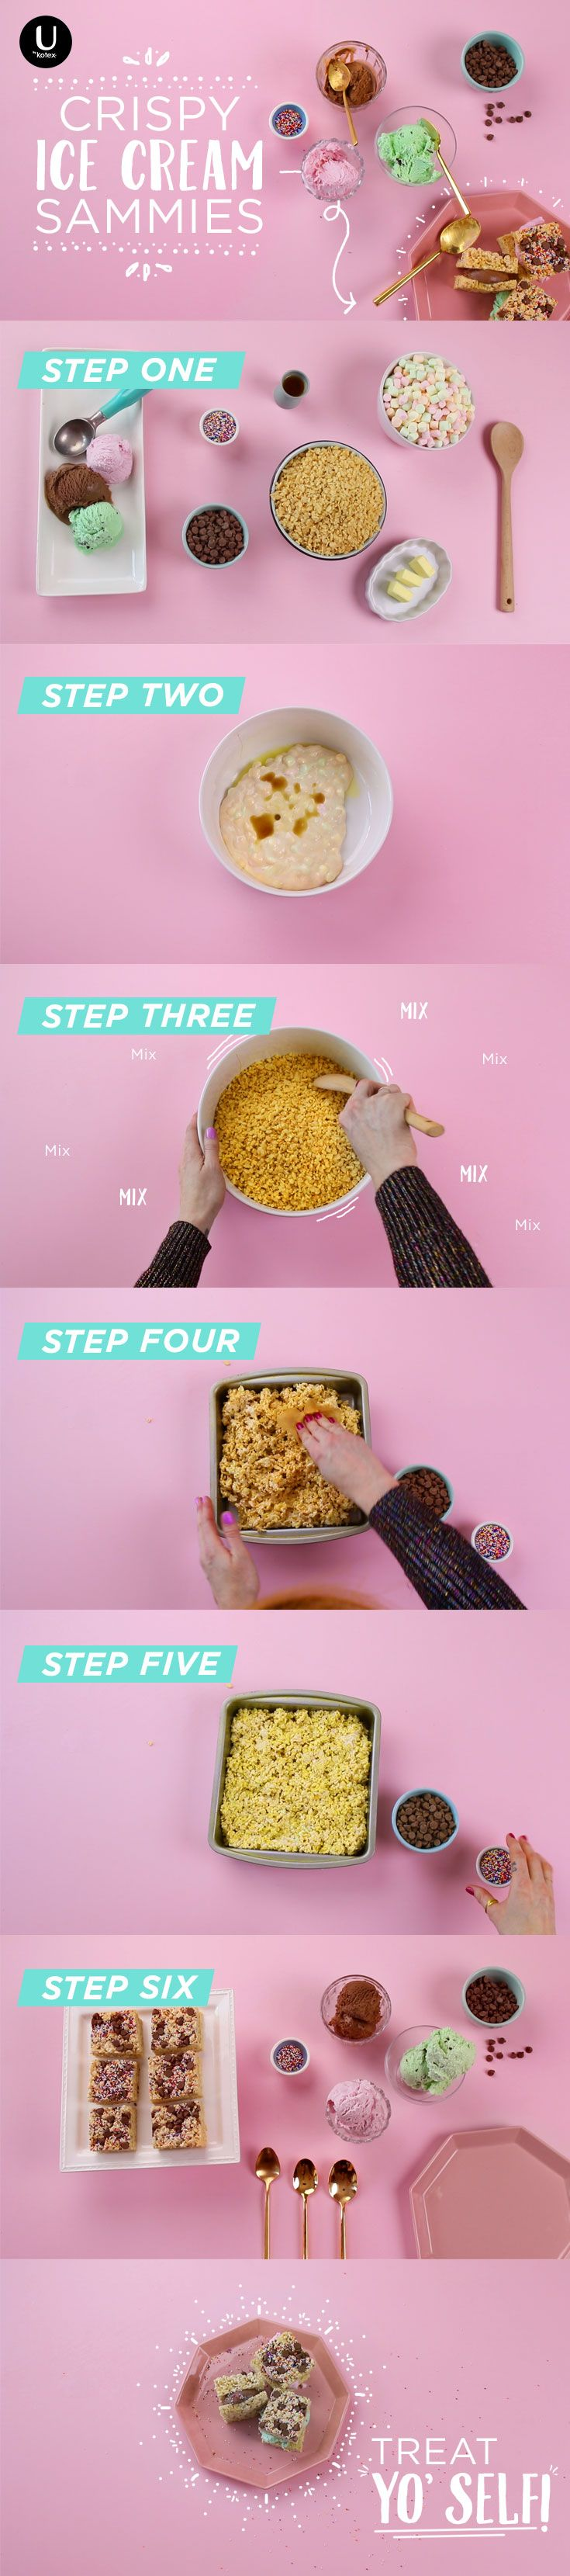 We're over here turning Rice Krispie Treats into super easy ice cream sandwiches! Get your period cravings sorted out with this DIY step by step recipe video: http://spr.ly/6490Bb8ak